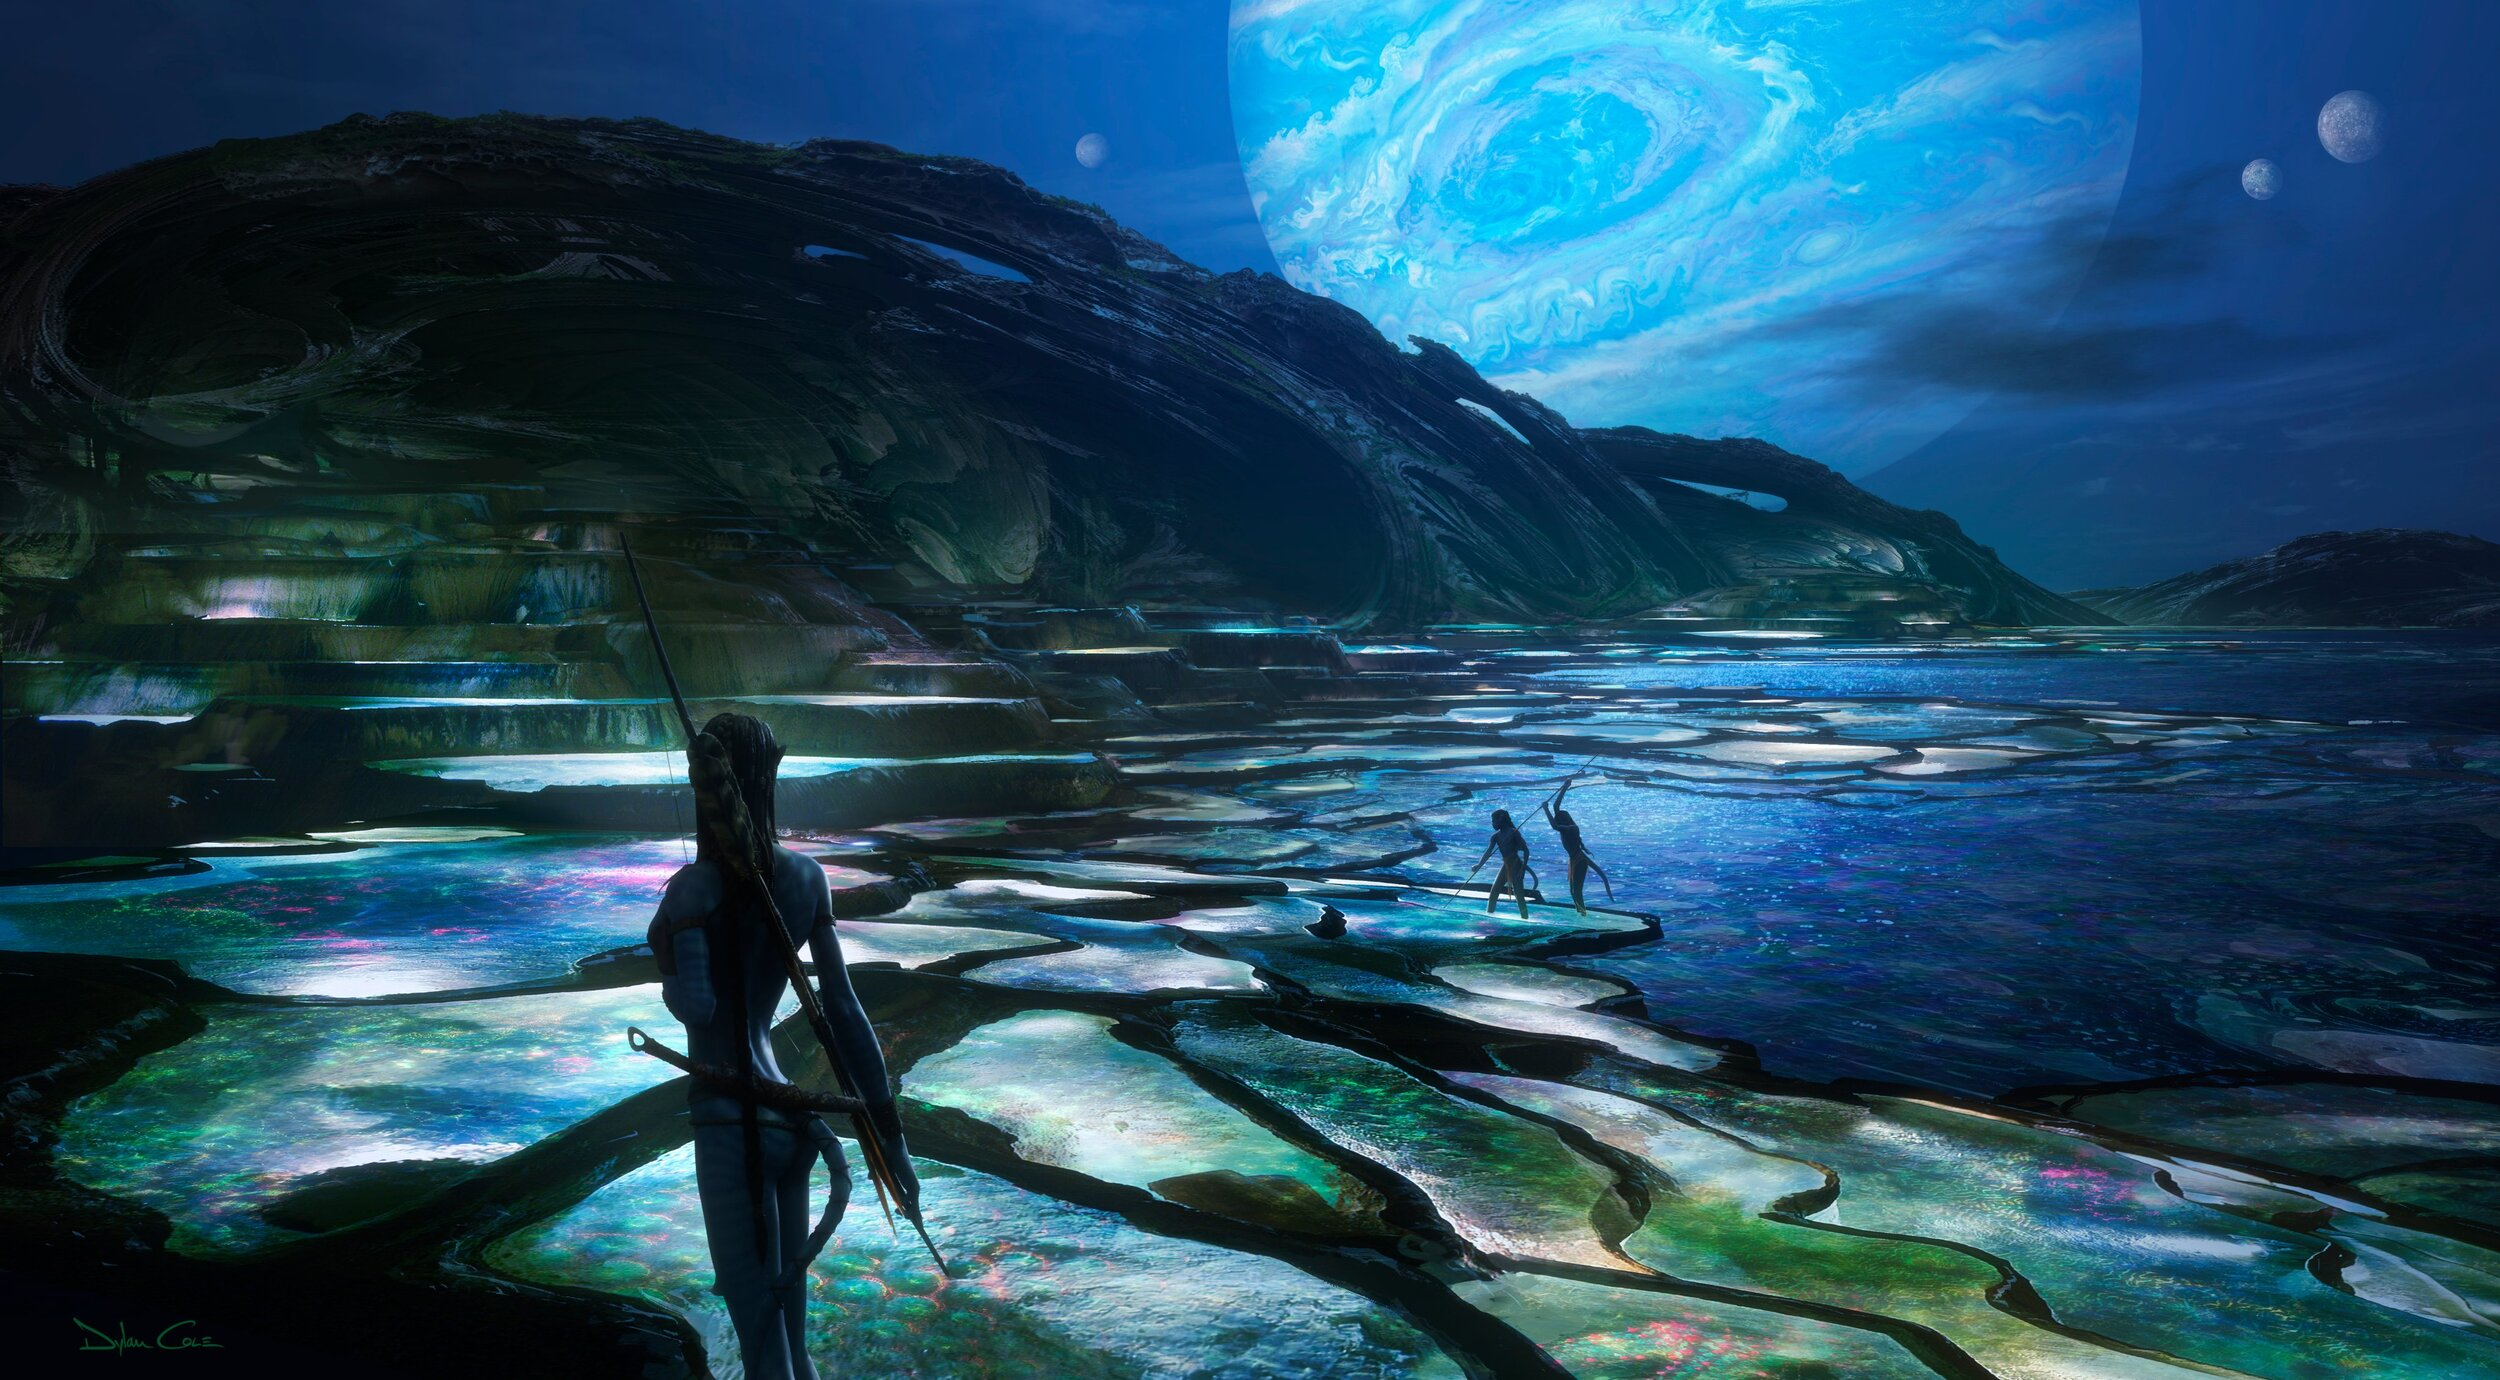 avatar 2 concept art film (4)